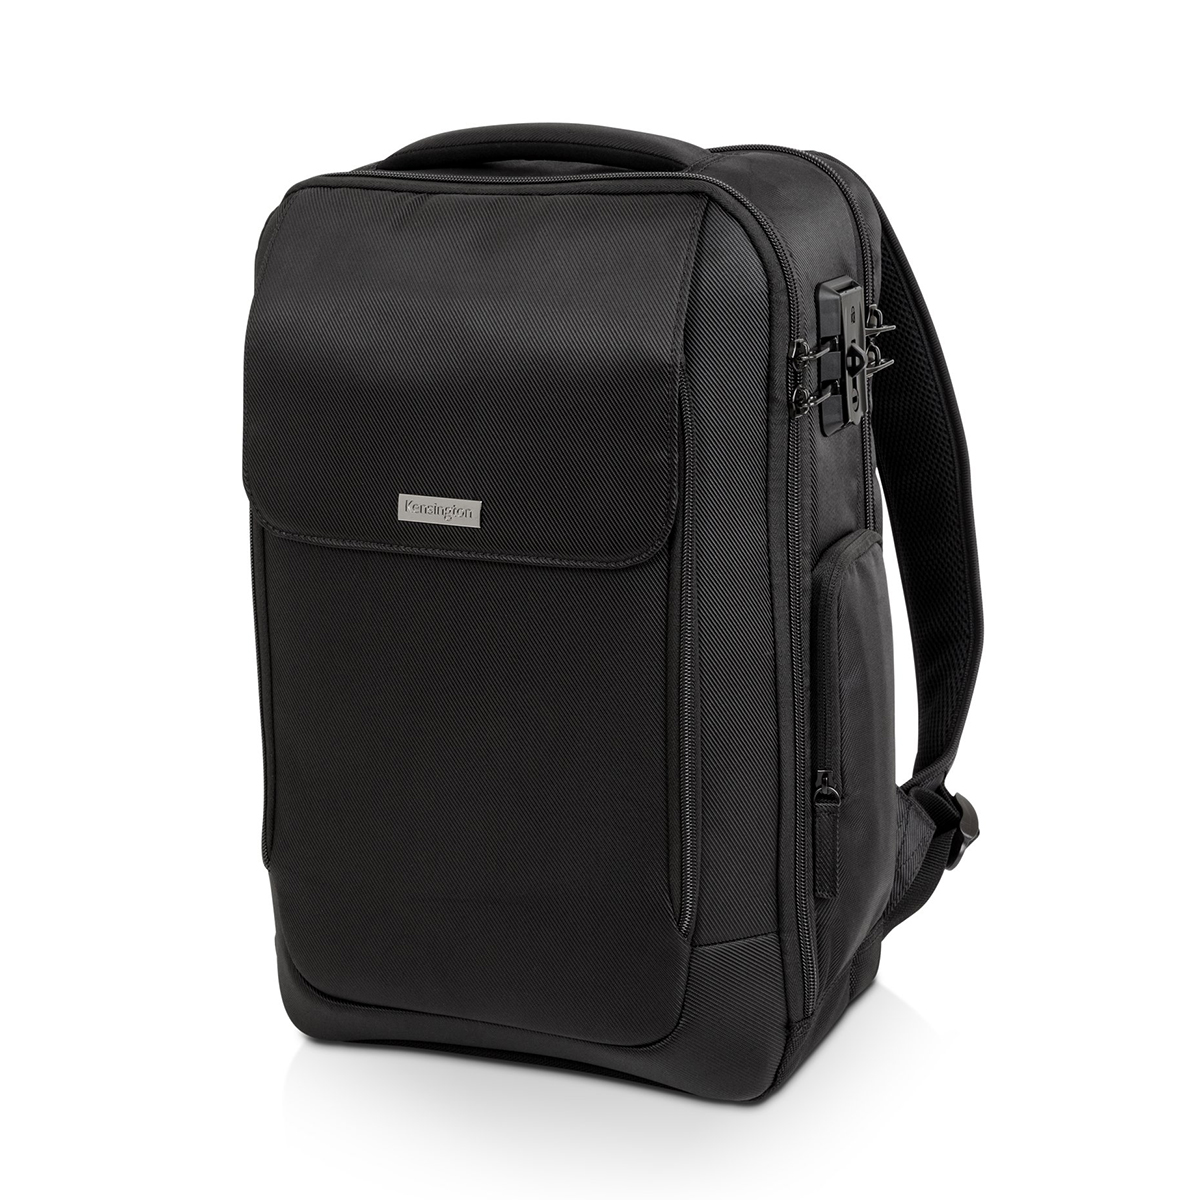 Kensington K98617WW SecureTrek 15.6 Inch Laptop Backpack